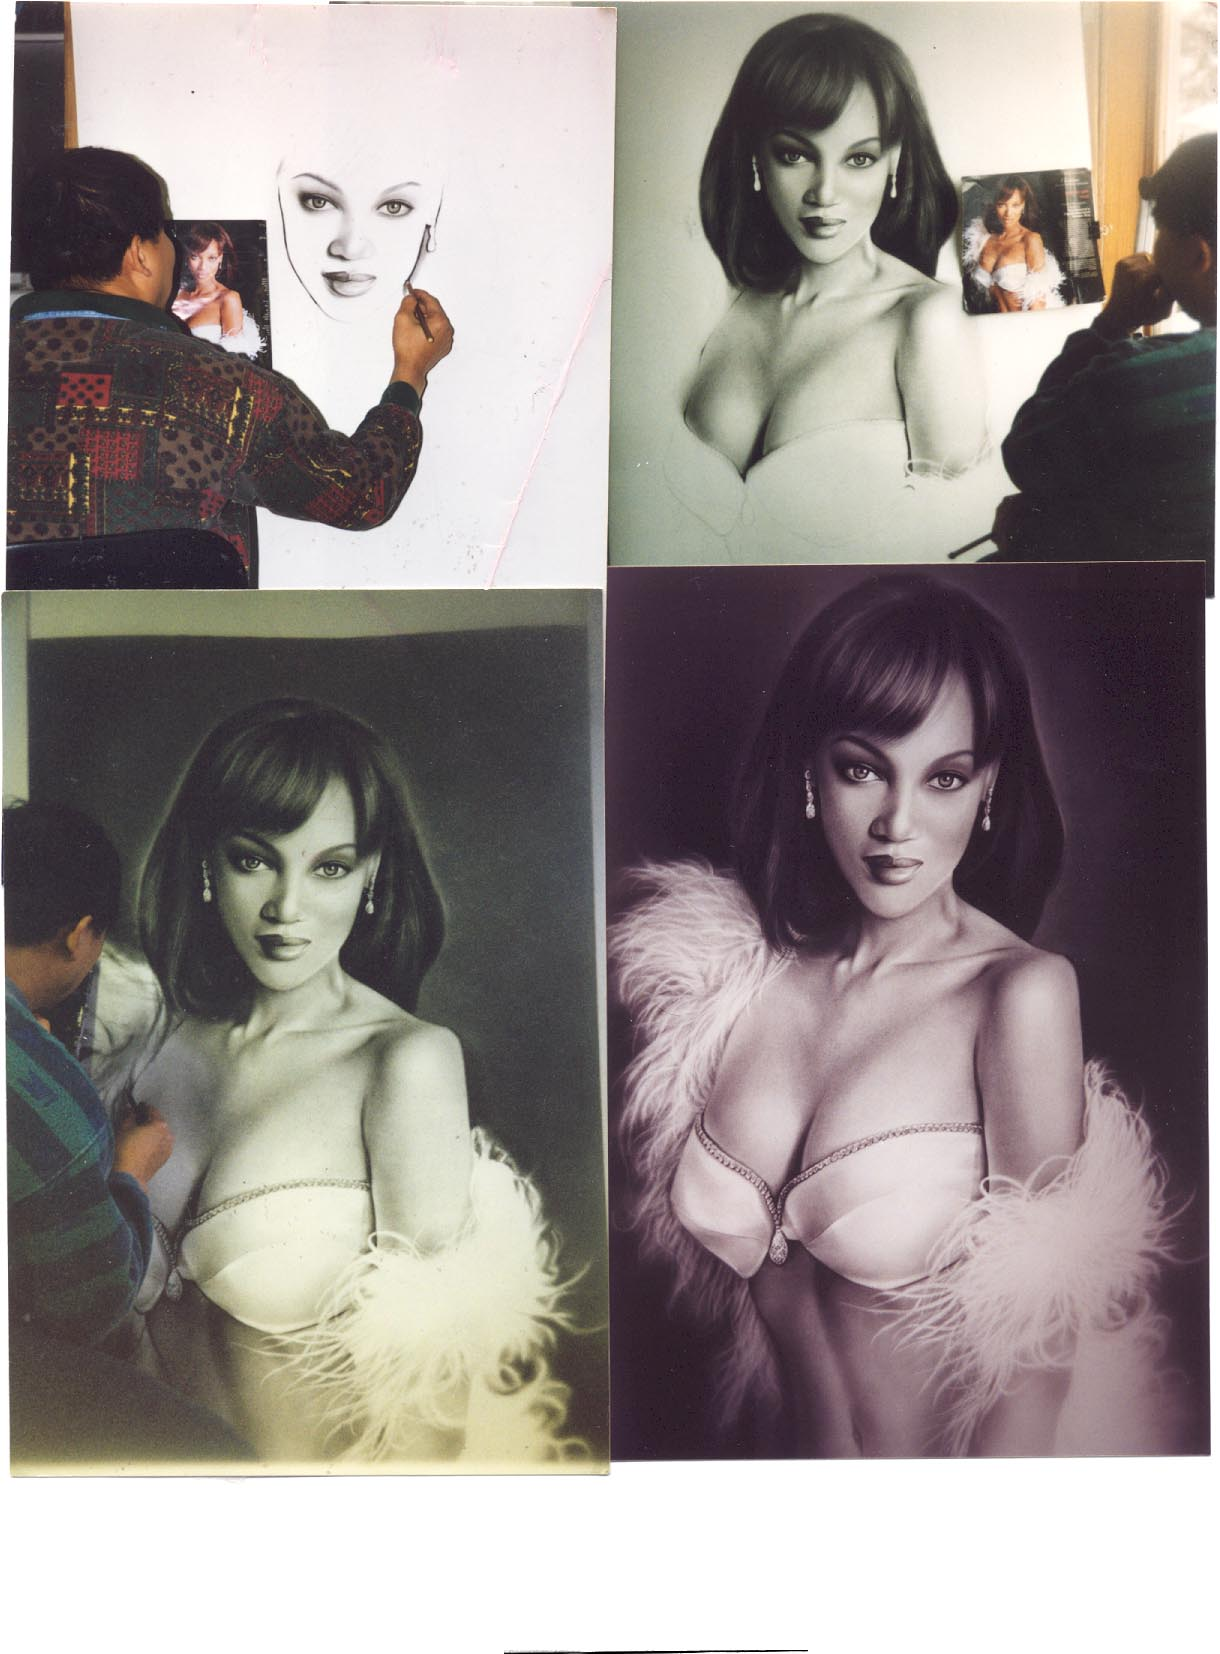 These are 4 pictures of Tyra Banks.